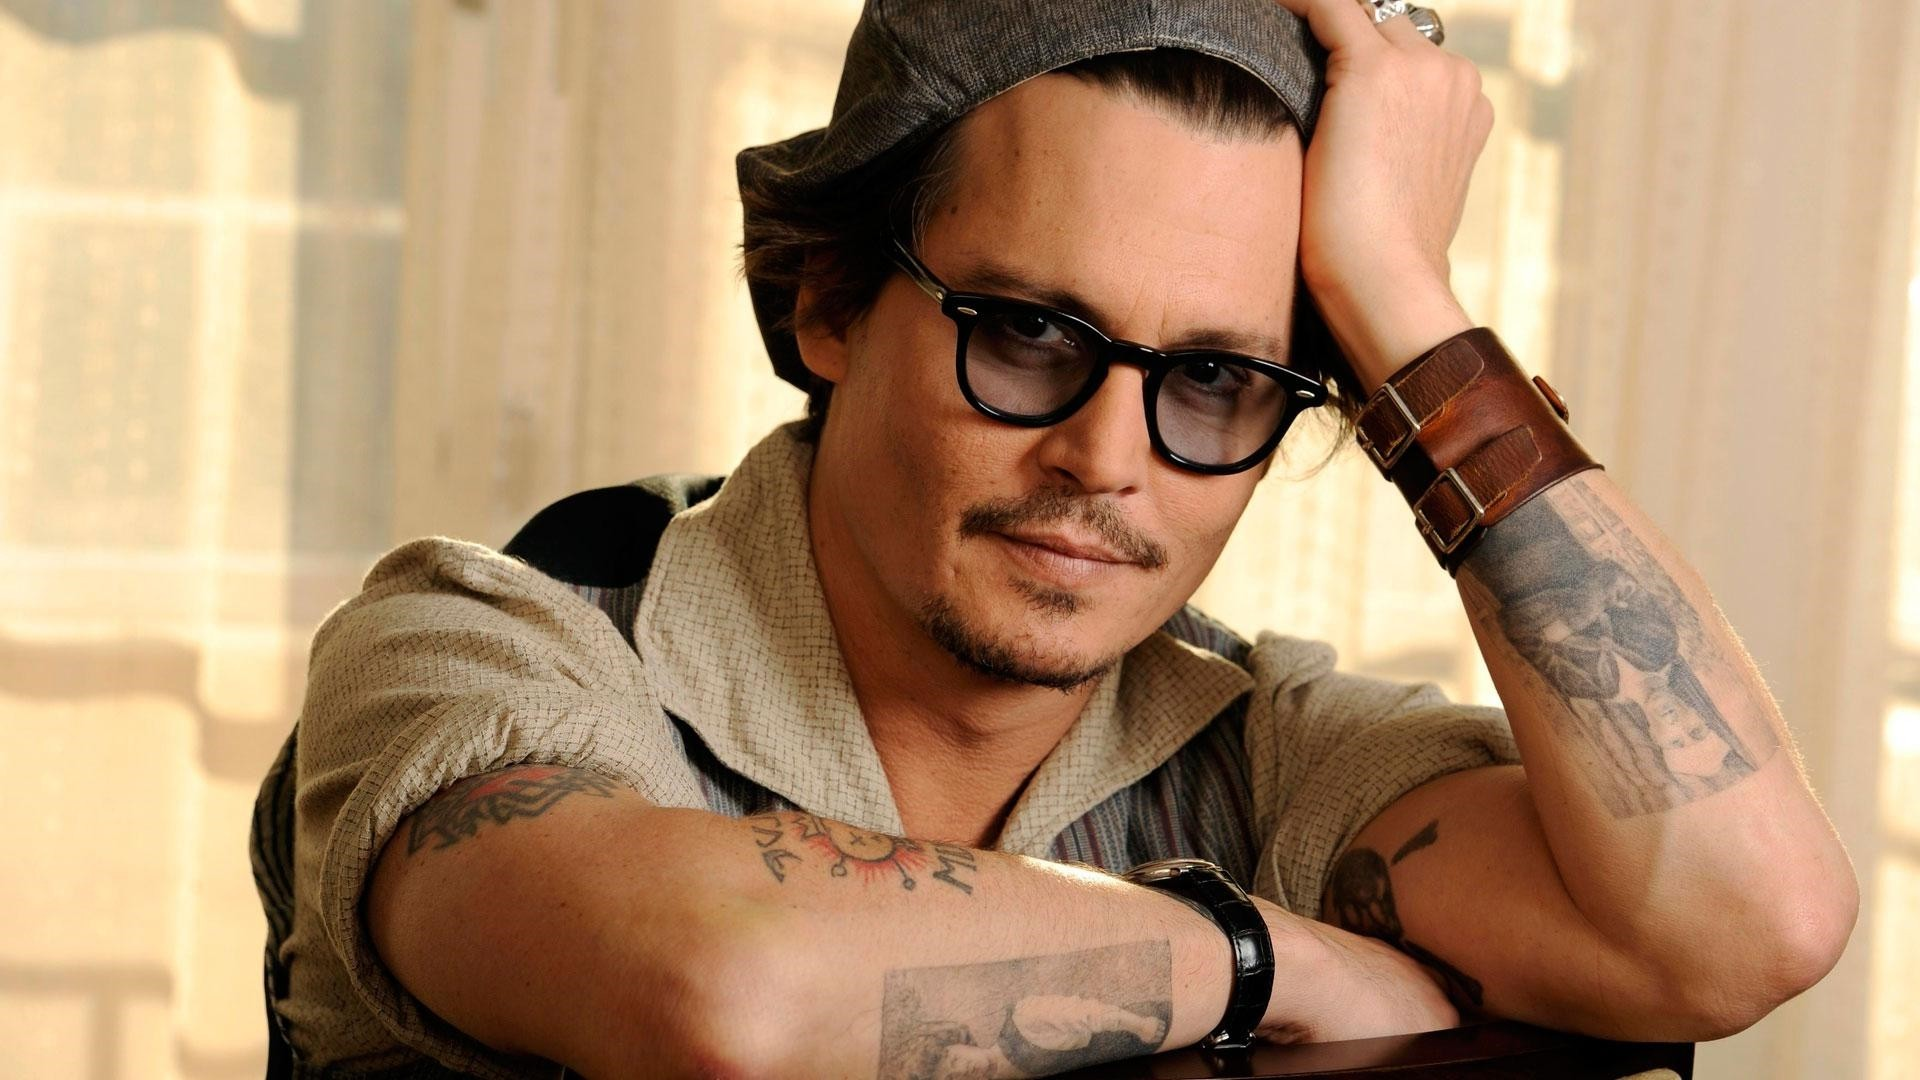 Johnny Depp hd desktop wallpaper